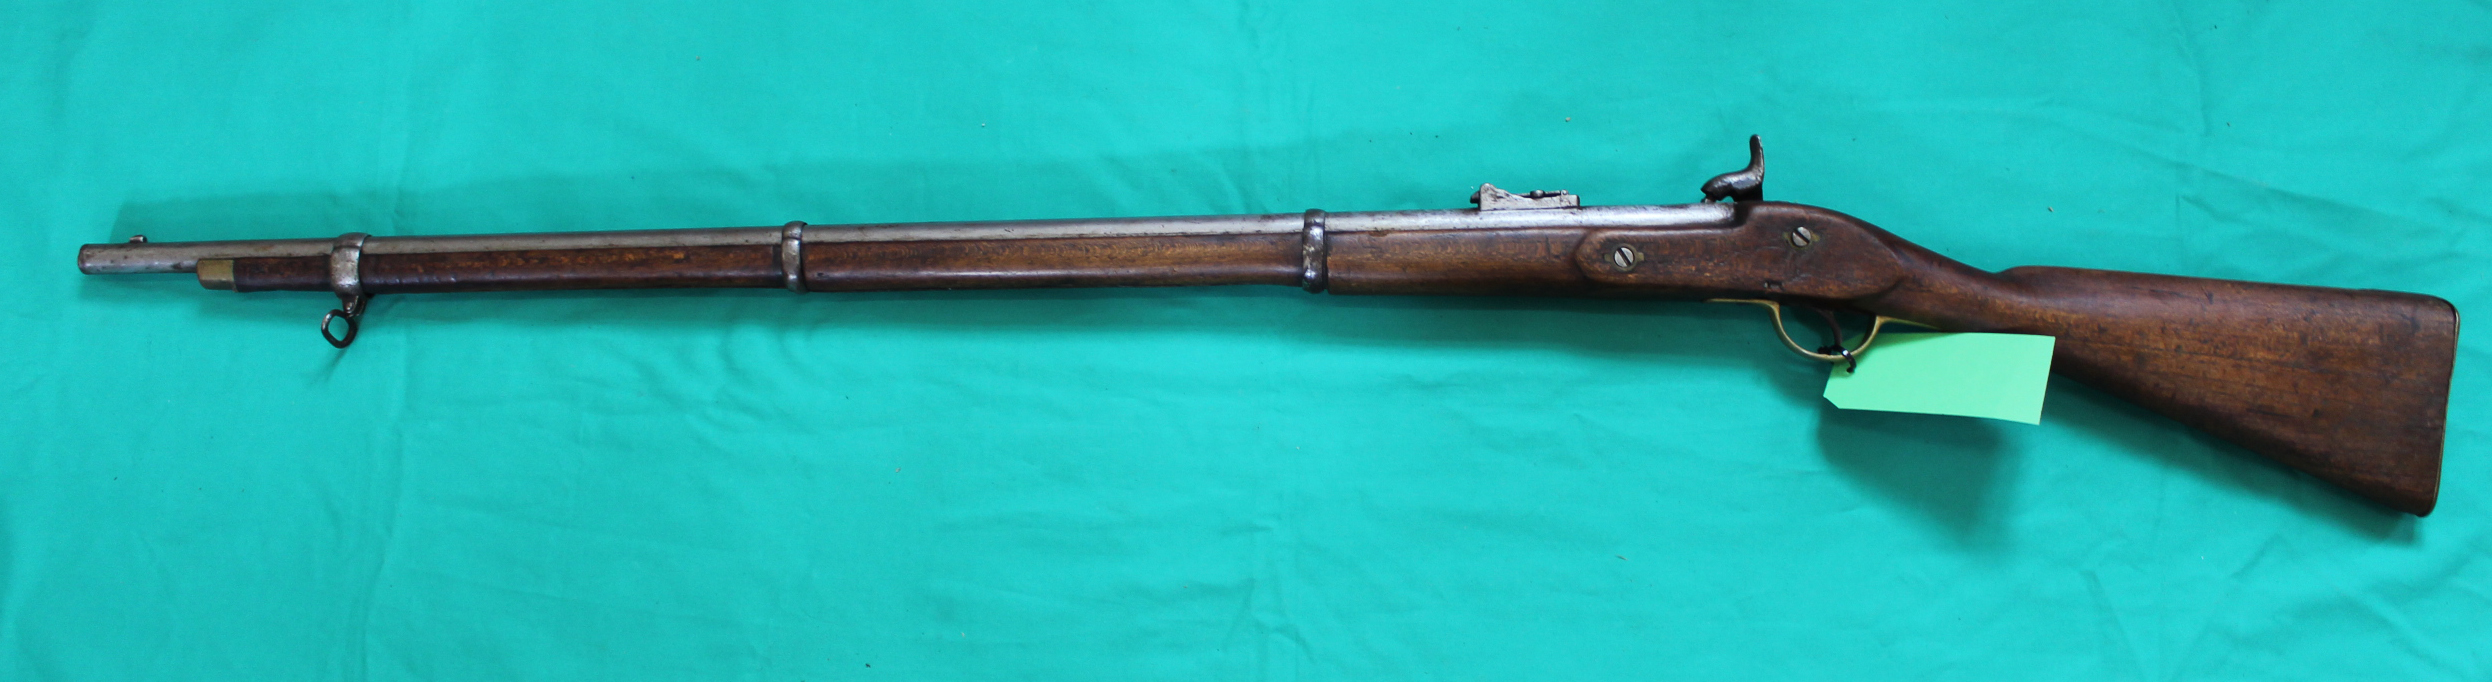 A percussion three band 'Enfield style' smoothbore long arm, - Image 3 of 3